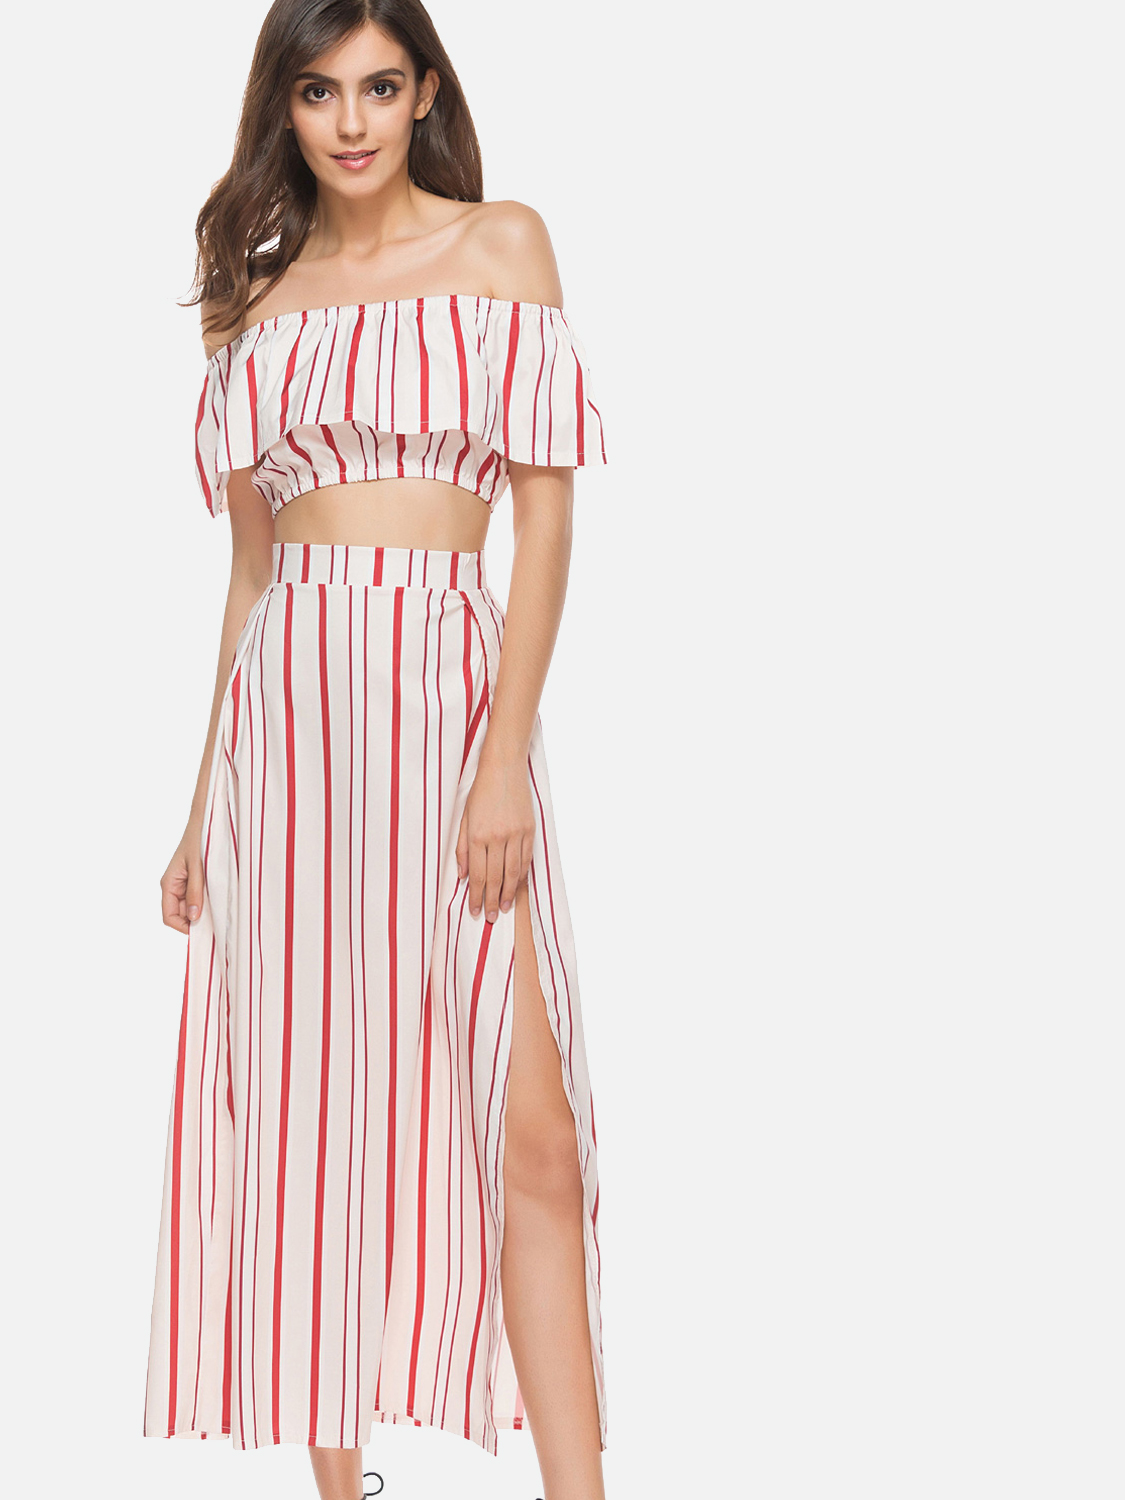 02b7a711a1 OneBling Three Piece Striped Sets Crop Tops and Split Side Maxi Skirts. Loading  zoom